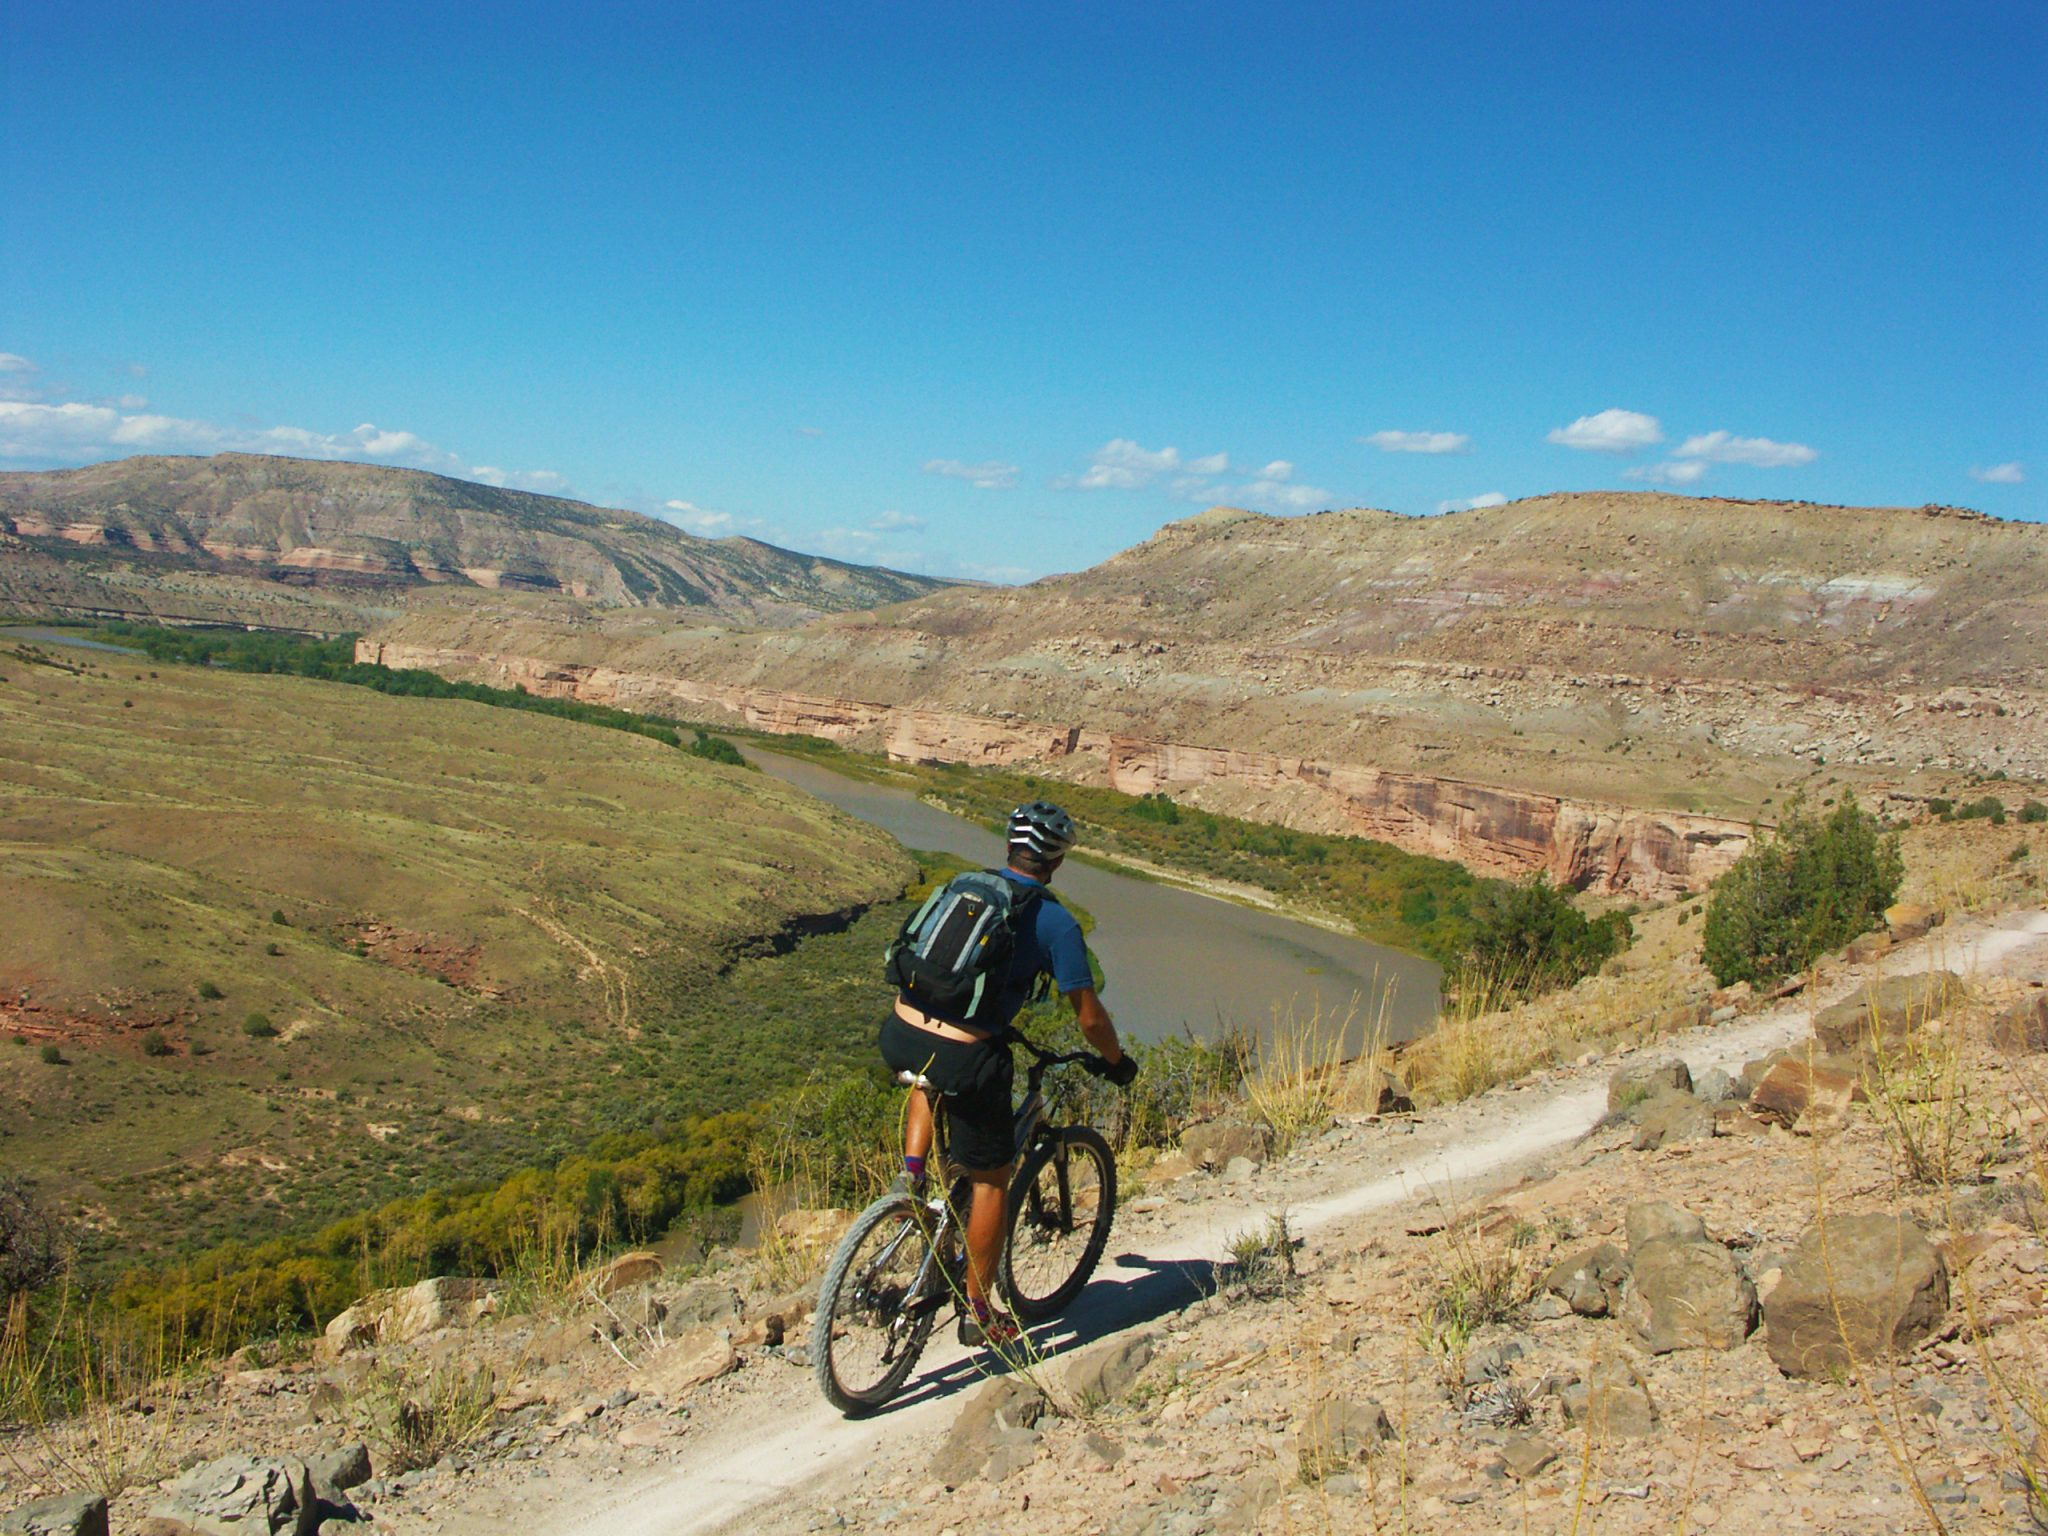 Kokopelli Trail, strong intermediate, mixed singletrack and doubletrack, guided mountain biking